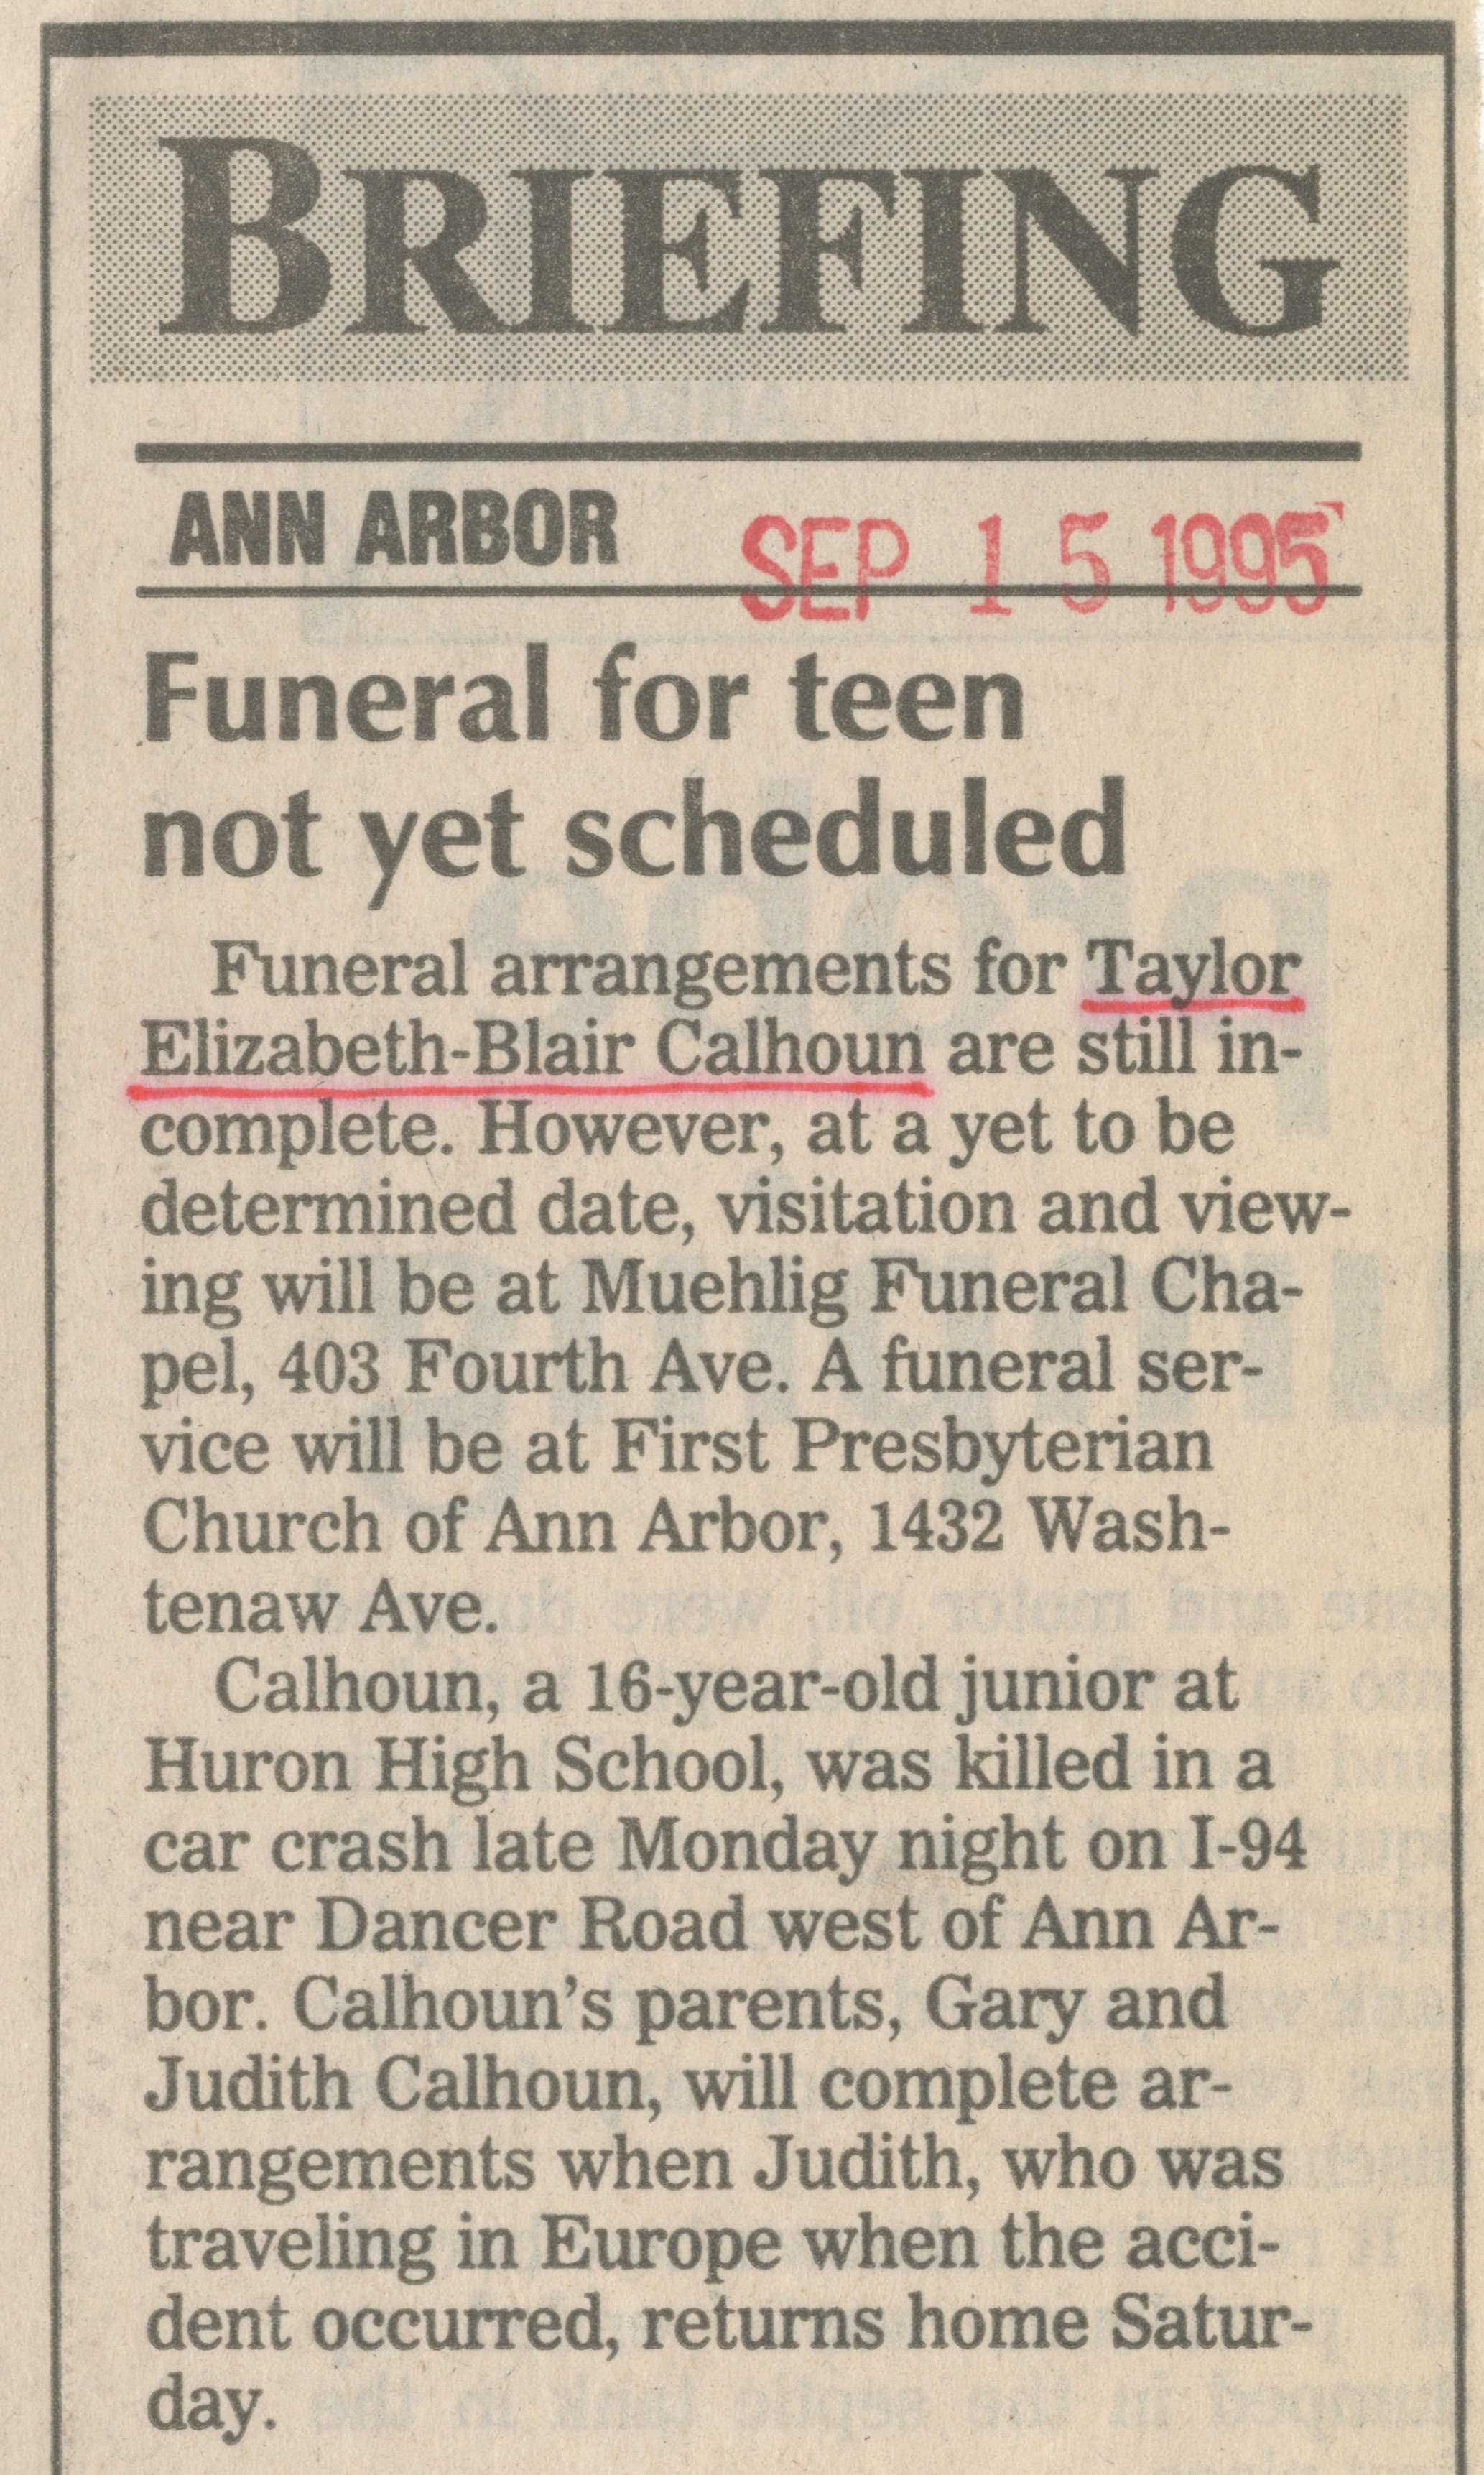 Funeral for teen not yet scheduled image